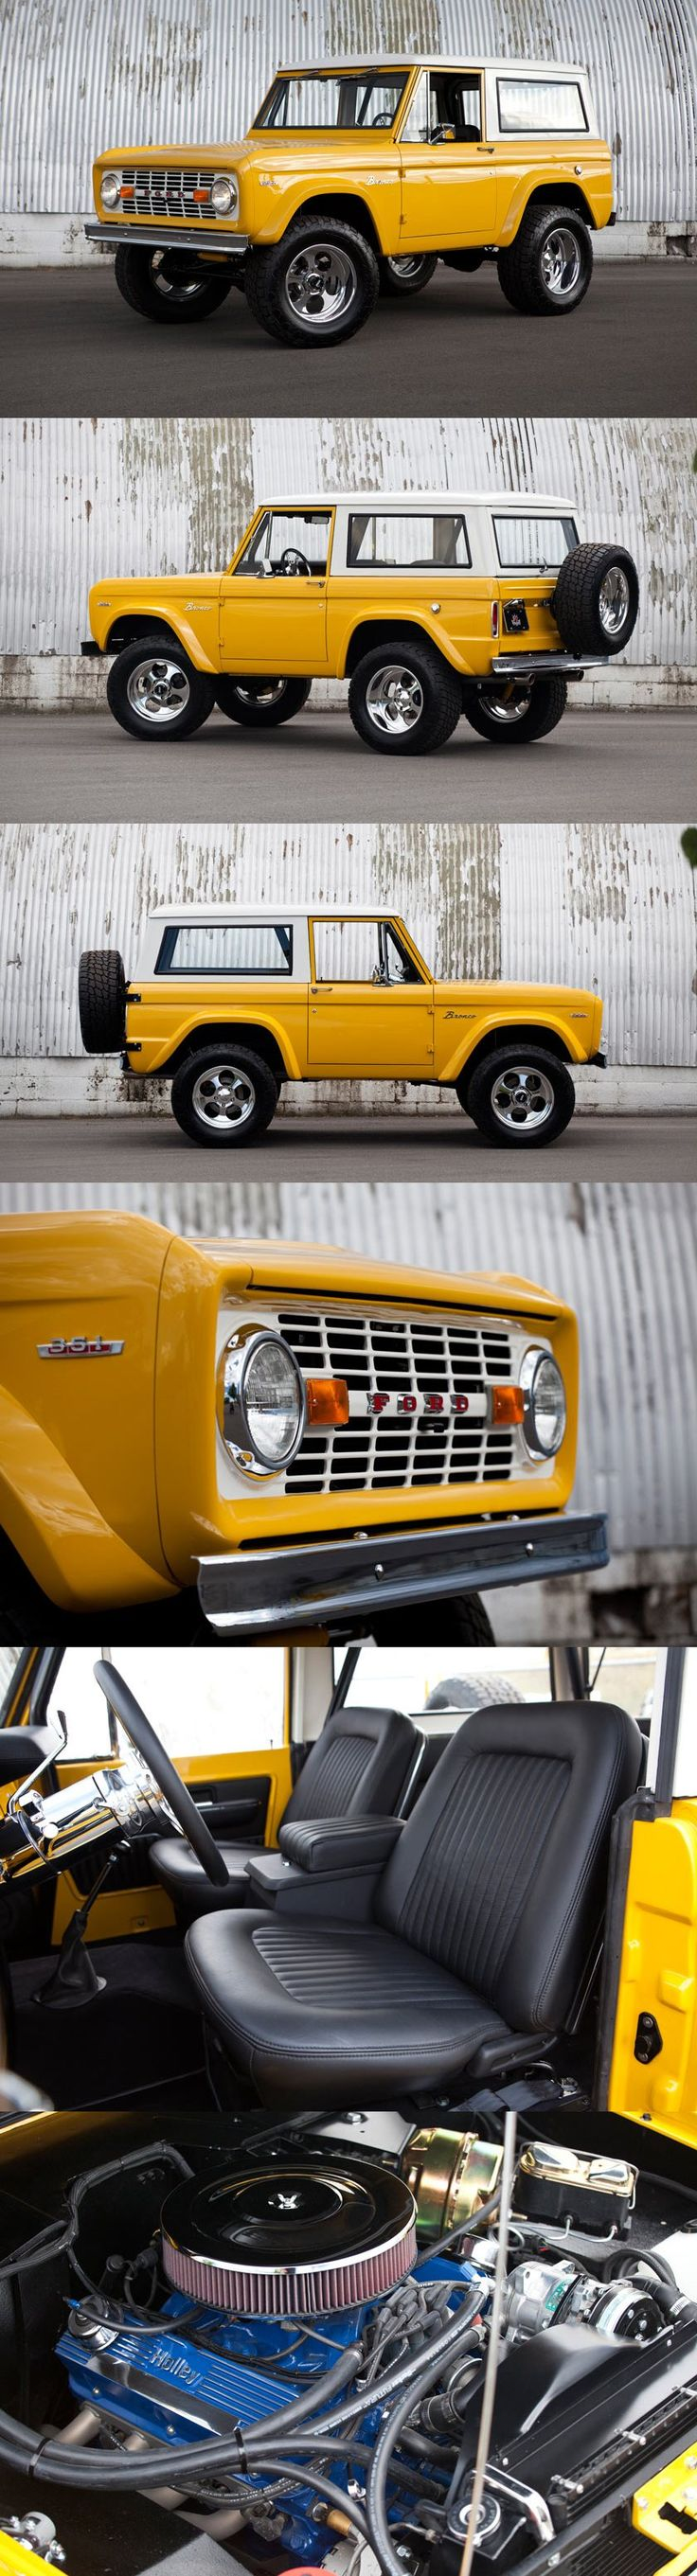 1968 Ford Bronco by Kindig It Design | WANT WANT WANT WANT!!!!